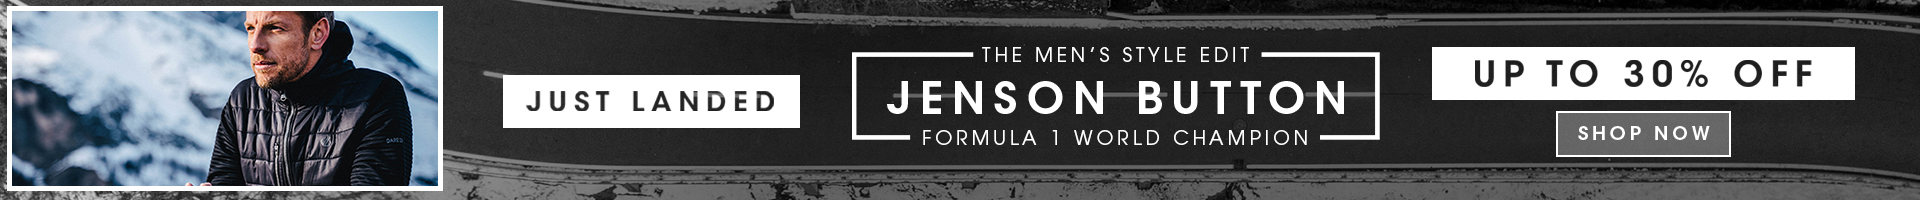 Men's Style Edit With Jenson Button Up To 30% Off